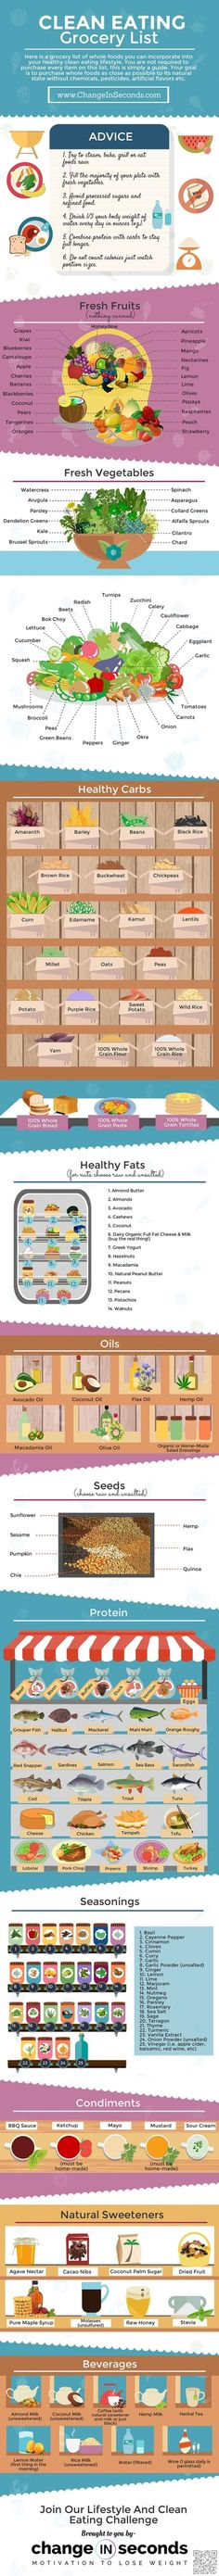 27. #Whole Foods You Can #Incorporate into Your Healthy #Clean Eating…